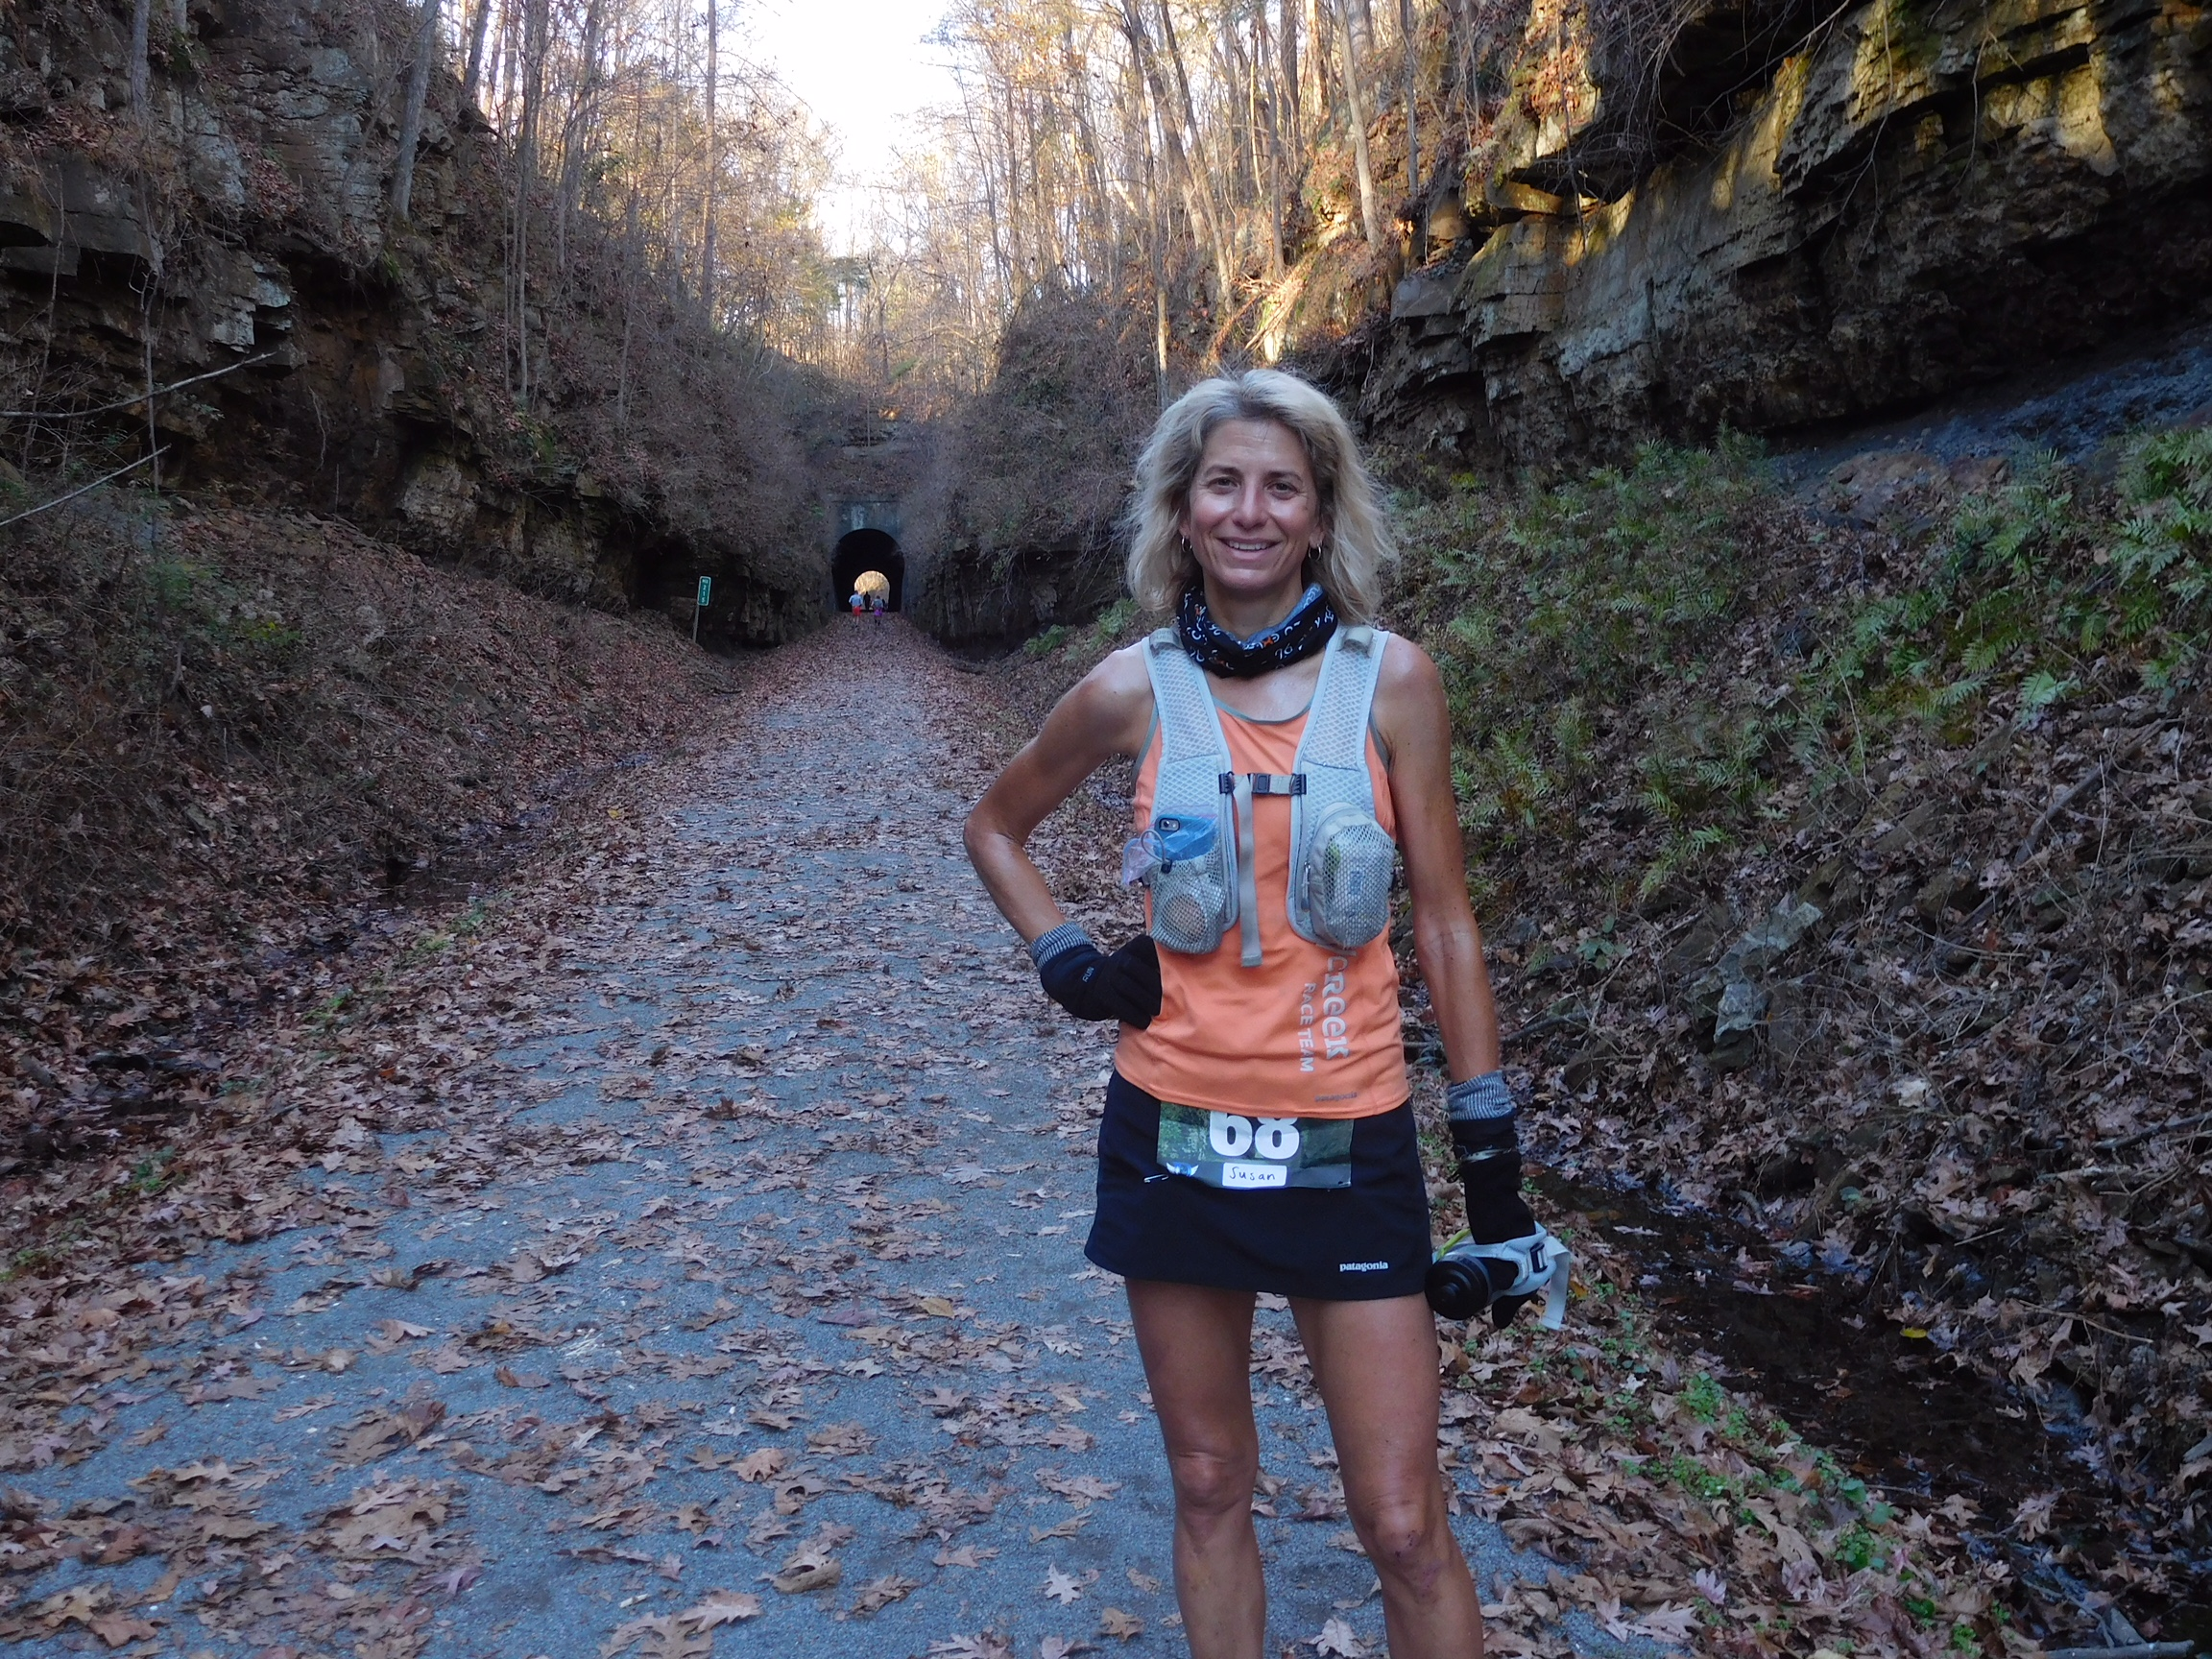 Ultrarunning mindset coach Susan Donnelly focuses on strengths instead of weaknesses to finish races like Tunnel Hill 100 mile